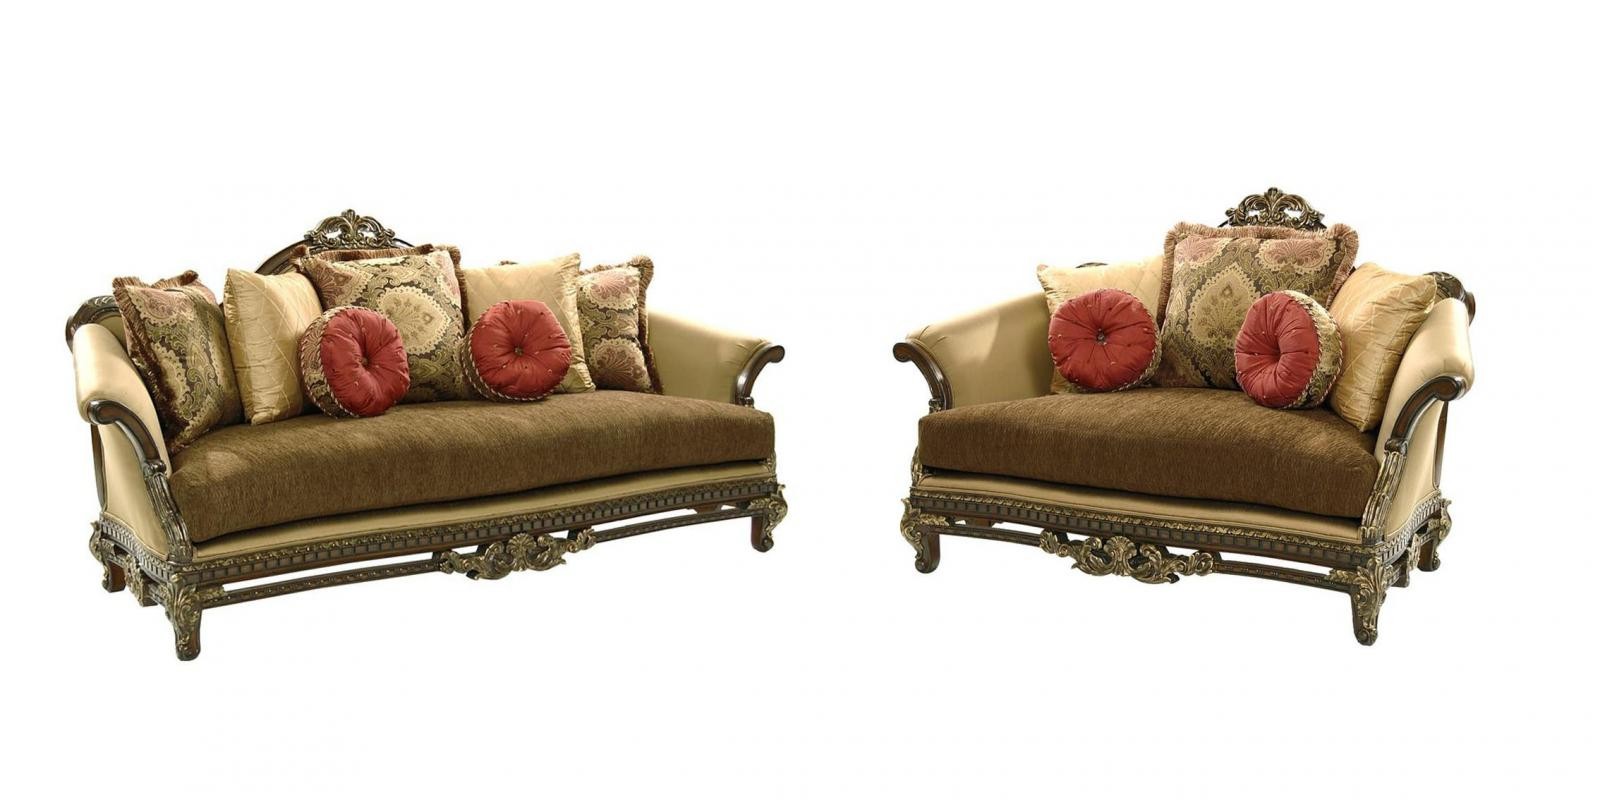 Classic, Traditional Brown, Walnut, Golden Beige Chenille and Fabric, Wood, Solid Hardwood Sofa Loveseat 2 pcs Sicily by Benneti